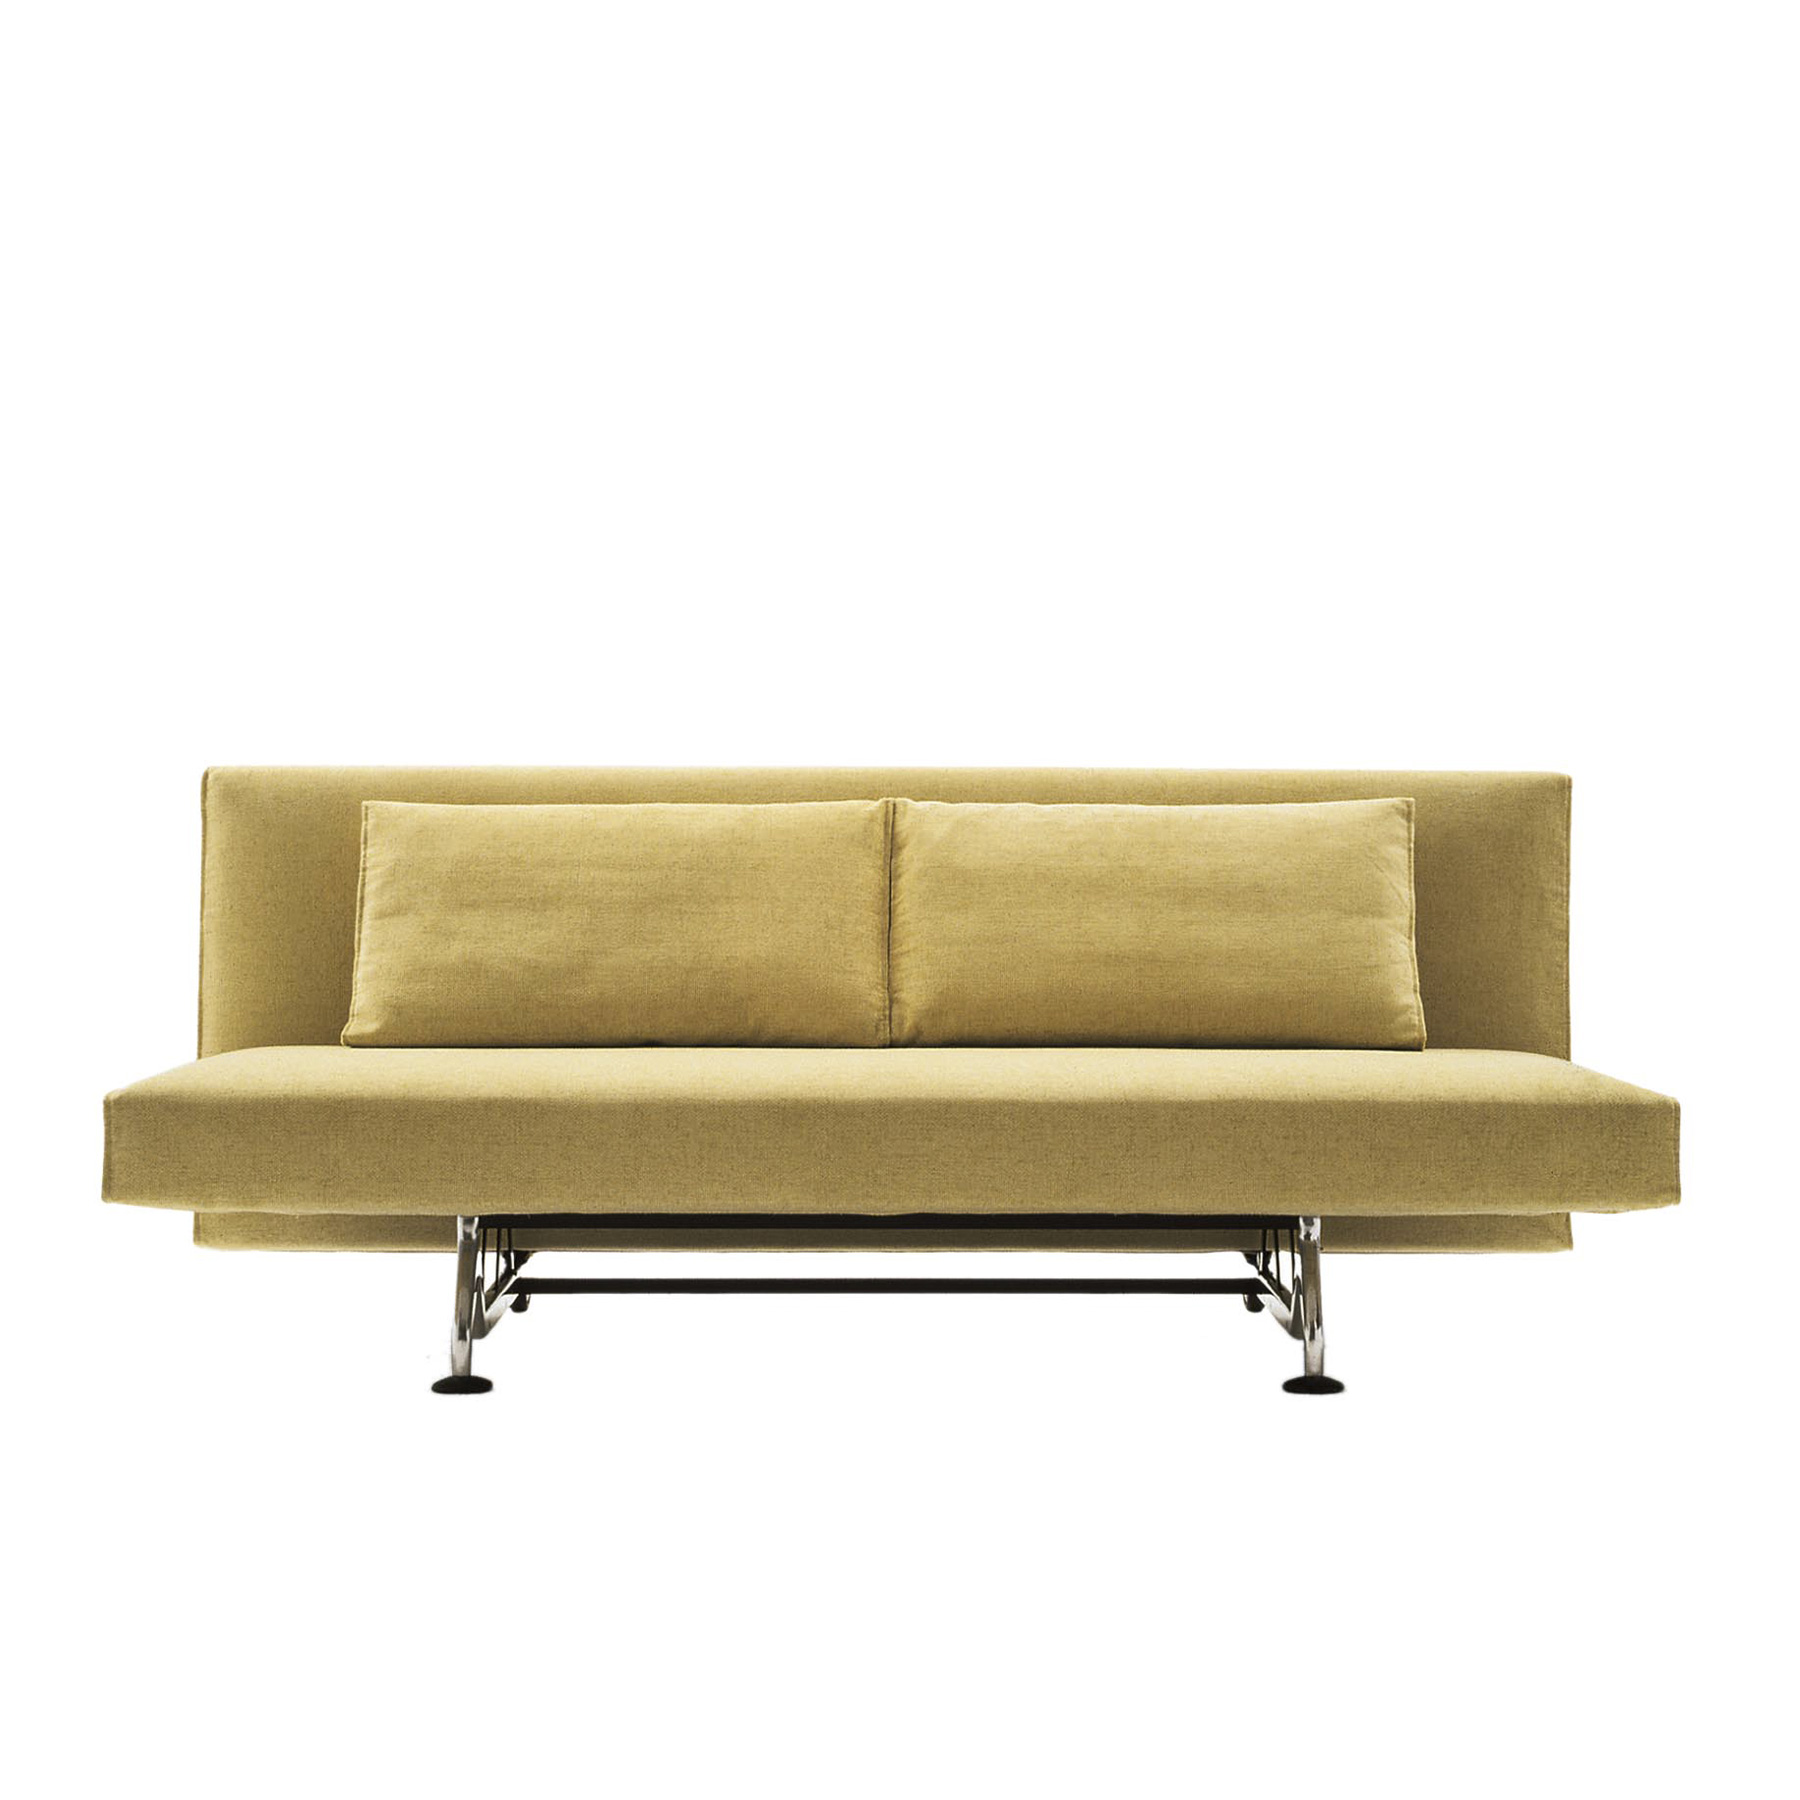 Sliding Sofa Bed - A practical yet extremely elegant sofa characterized by its base in cast aluminium which transforms itself into a comfortable double bed simply by lowering the backrest via the patented mechanism. The cushions are upholstered in duck down. All covers are removable.   Additional covers are available, please enquire for prices. | Matter of Stuff